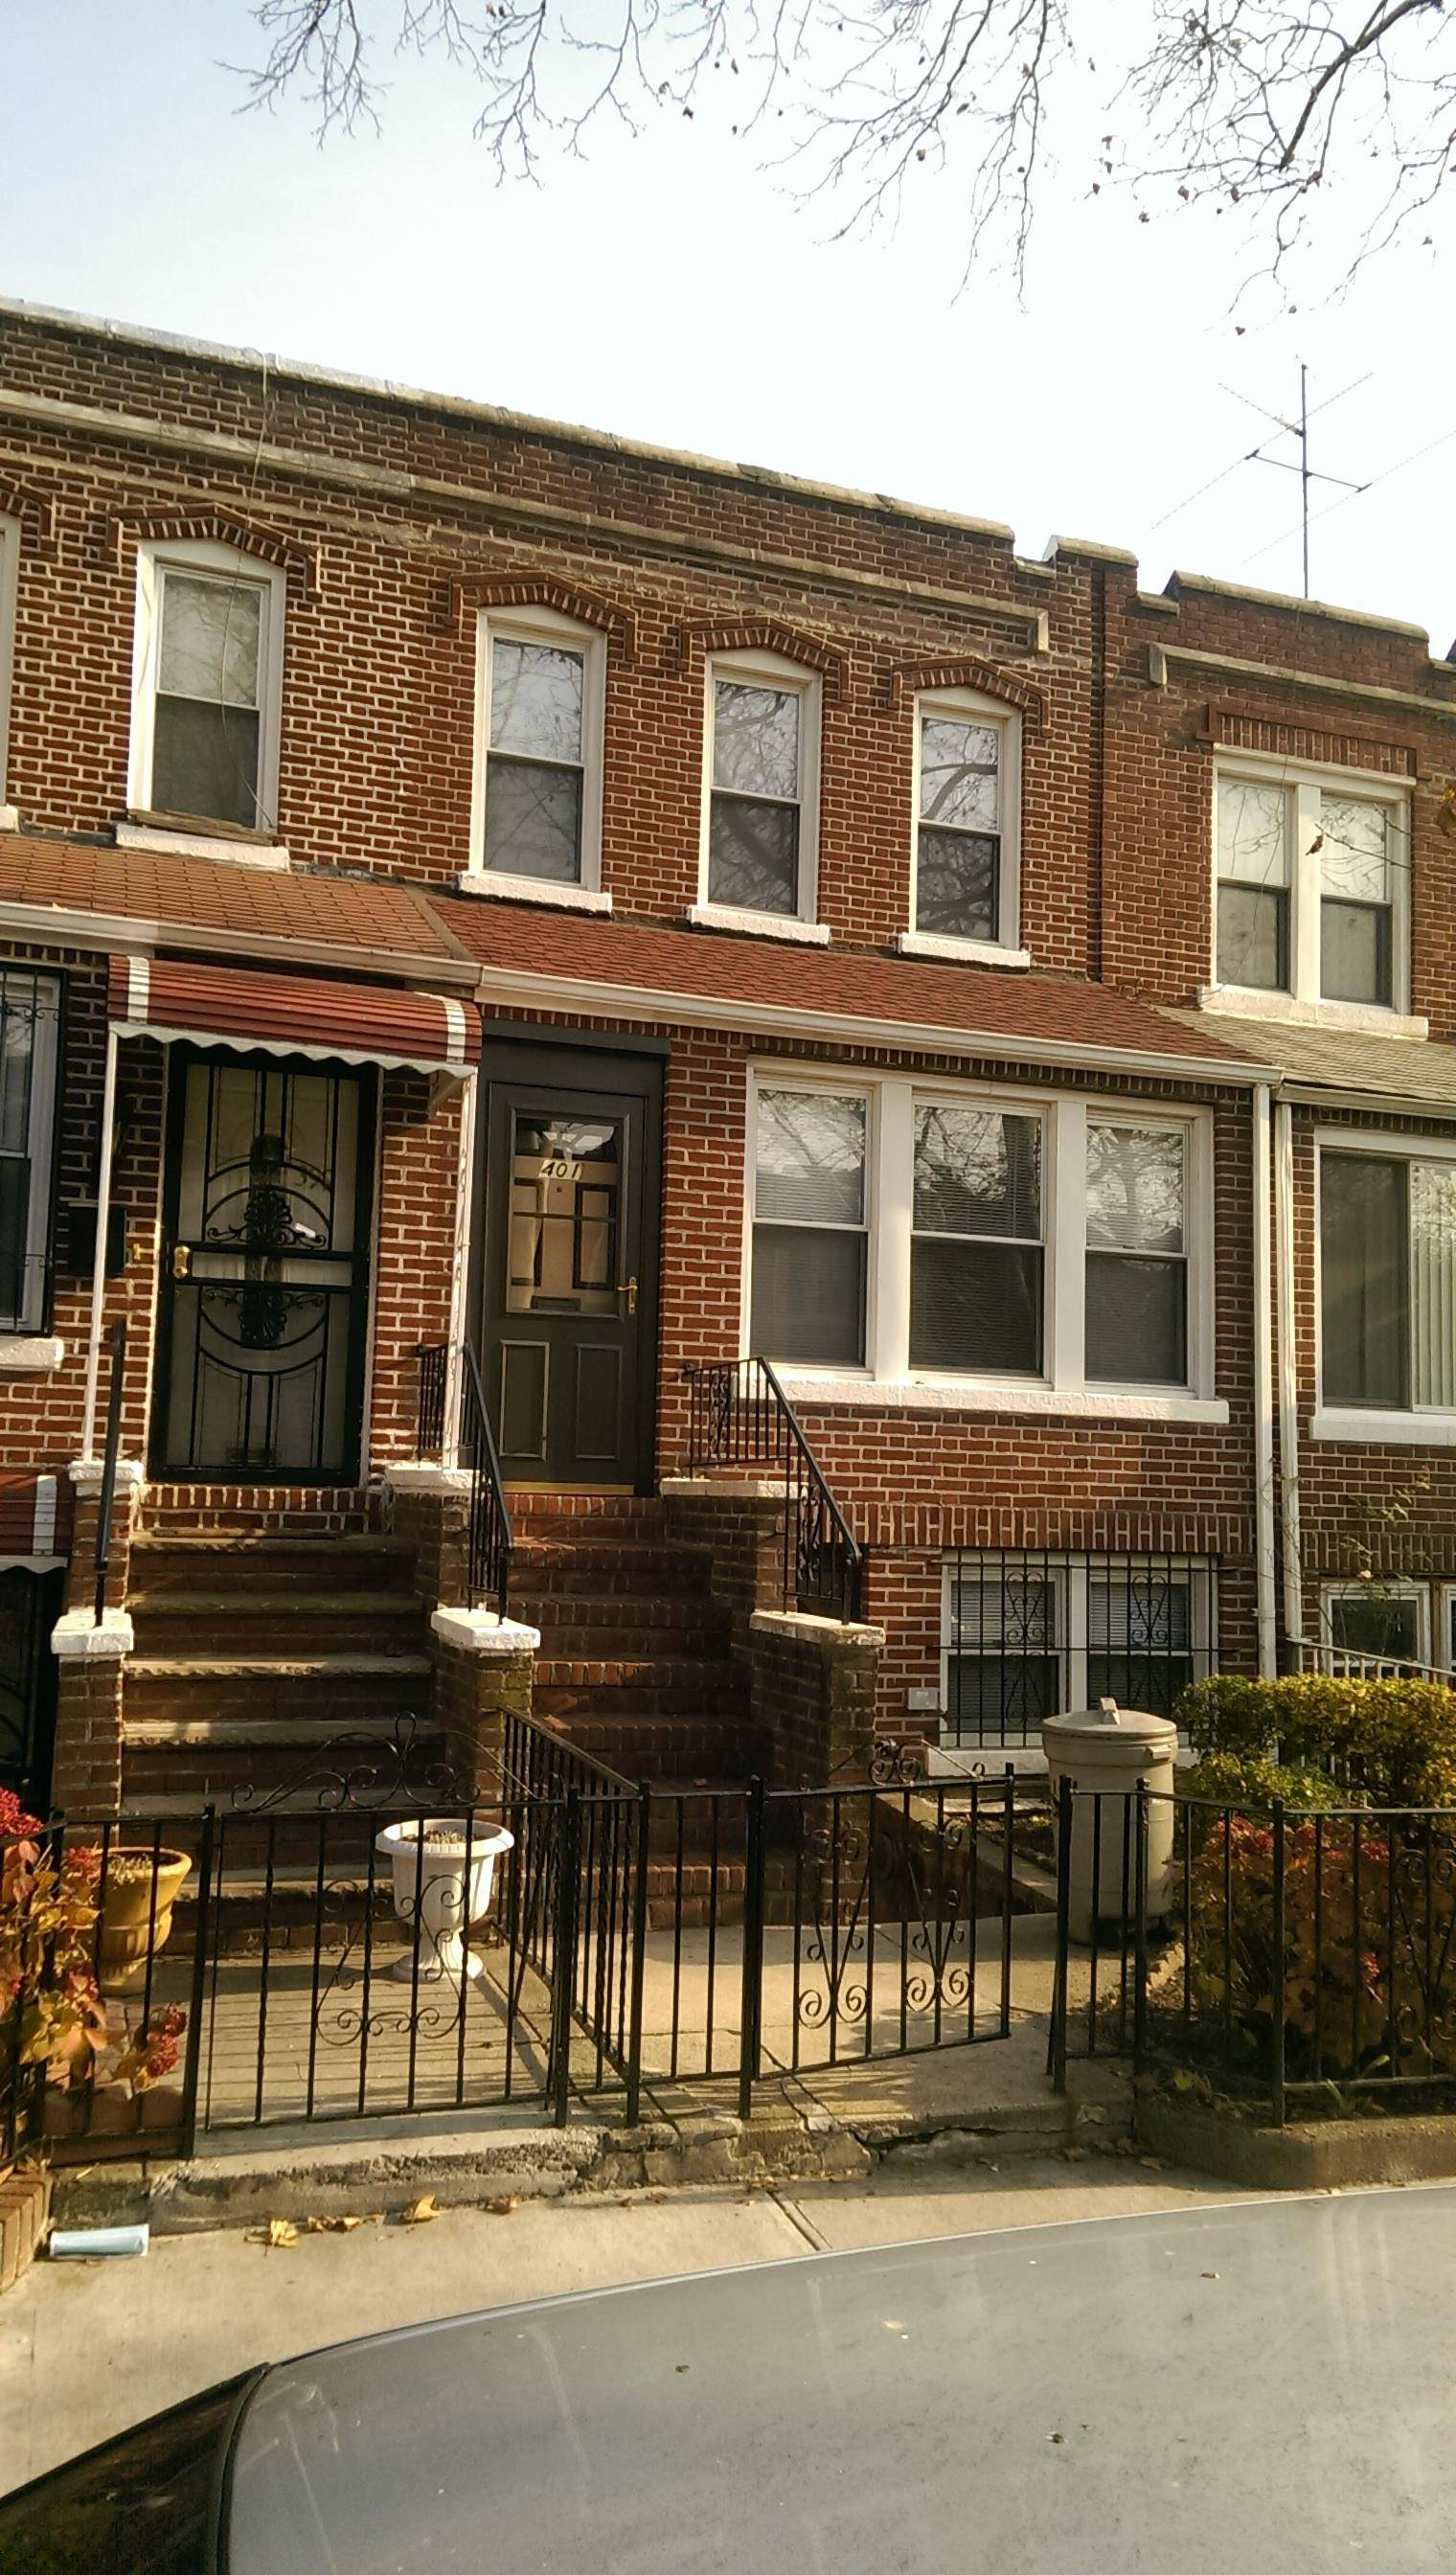 flatbush homes for sale, real estate agents selling flatbush brooklyn homes, fillmore real estate